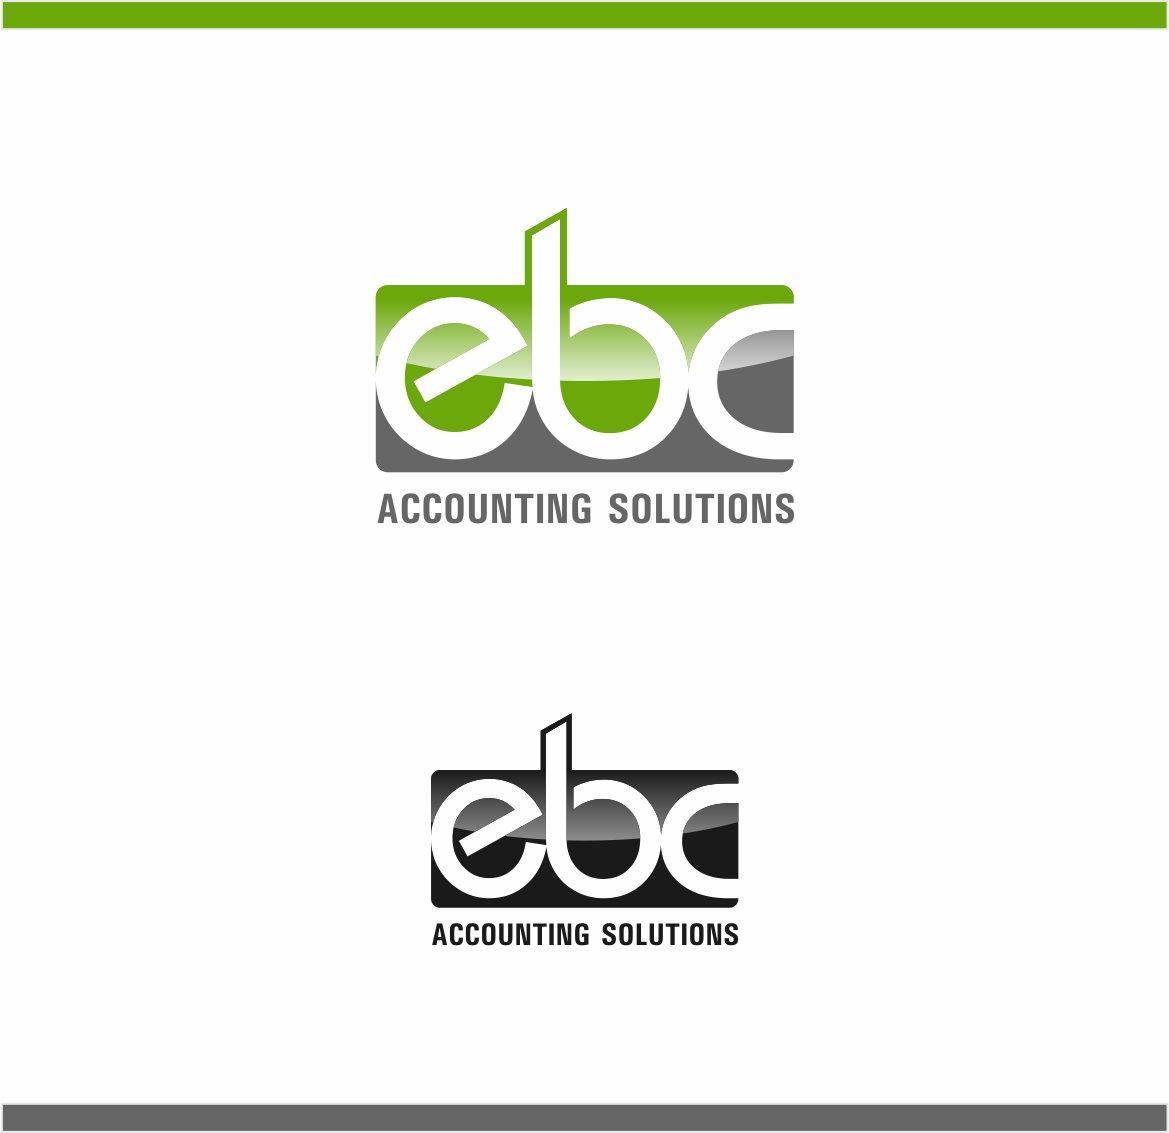 Logo Design by haidu - Entry No. 108 in the Logo Design Contest New Logo Design for EBC Accounting Solutions.